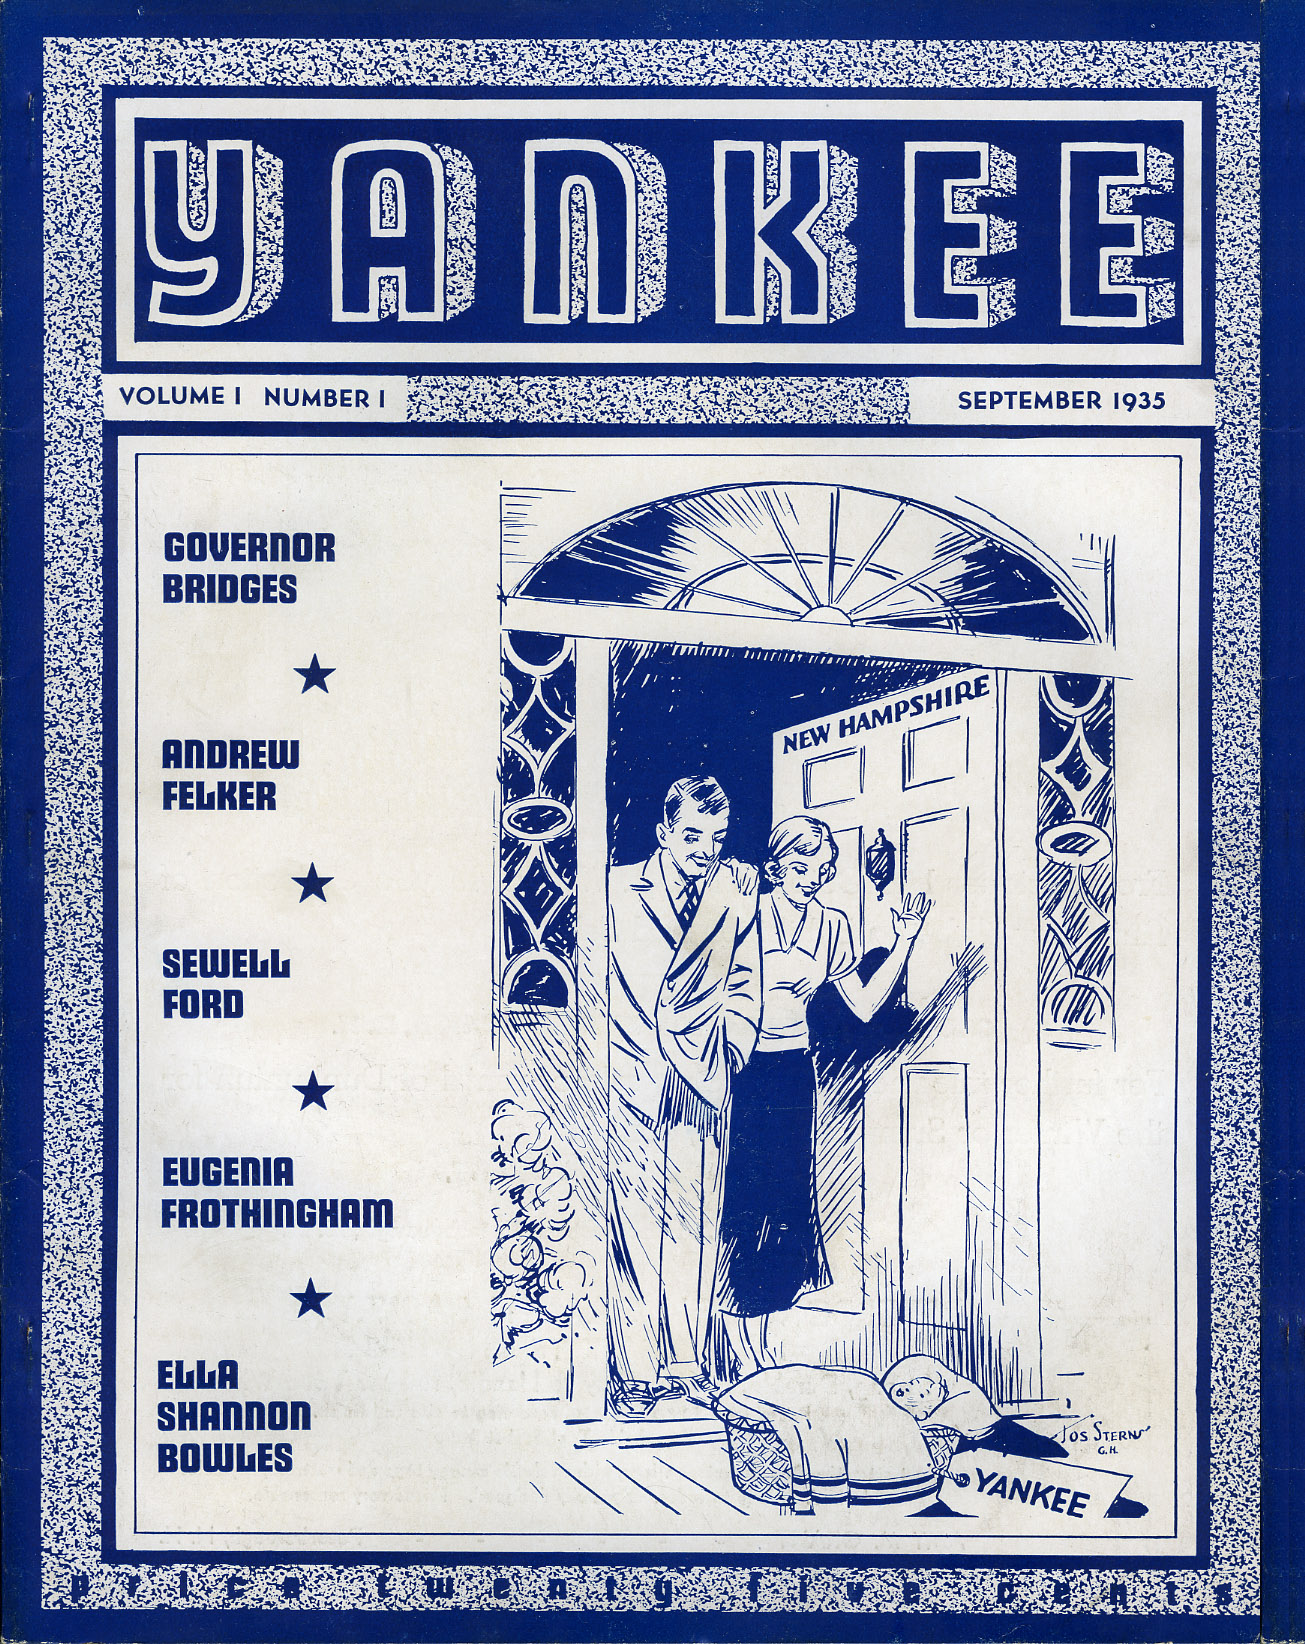 First issue of Yankee, Sept. 1935